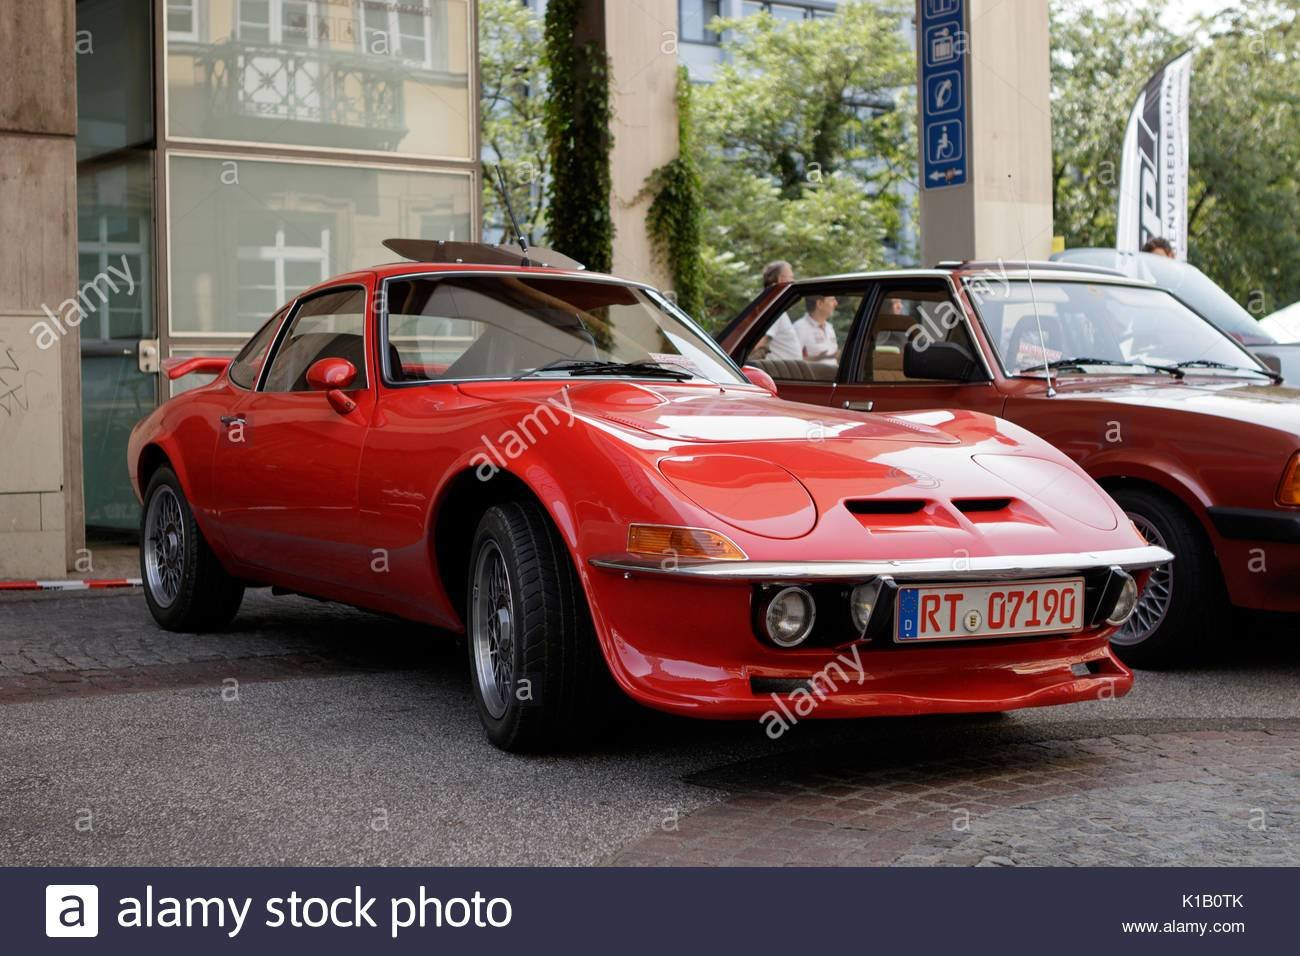 Latest Opel Gt Stock Photos Opel Gt Stock Images Alamy Free Download